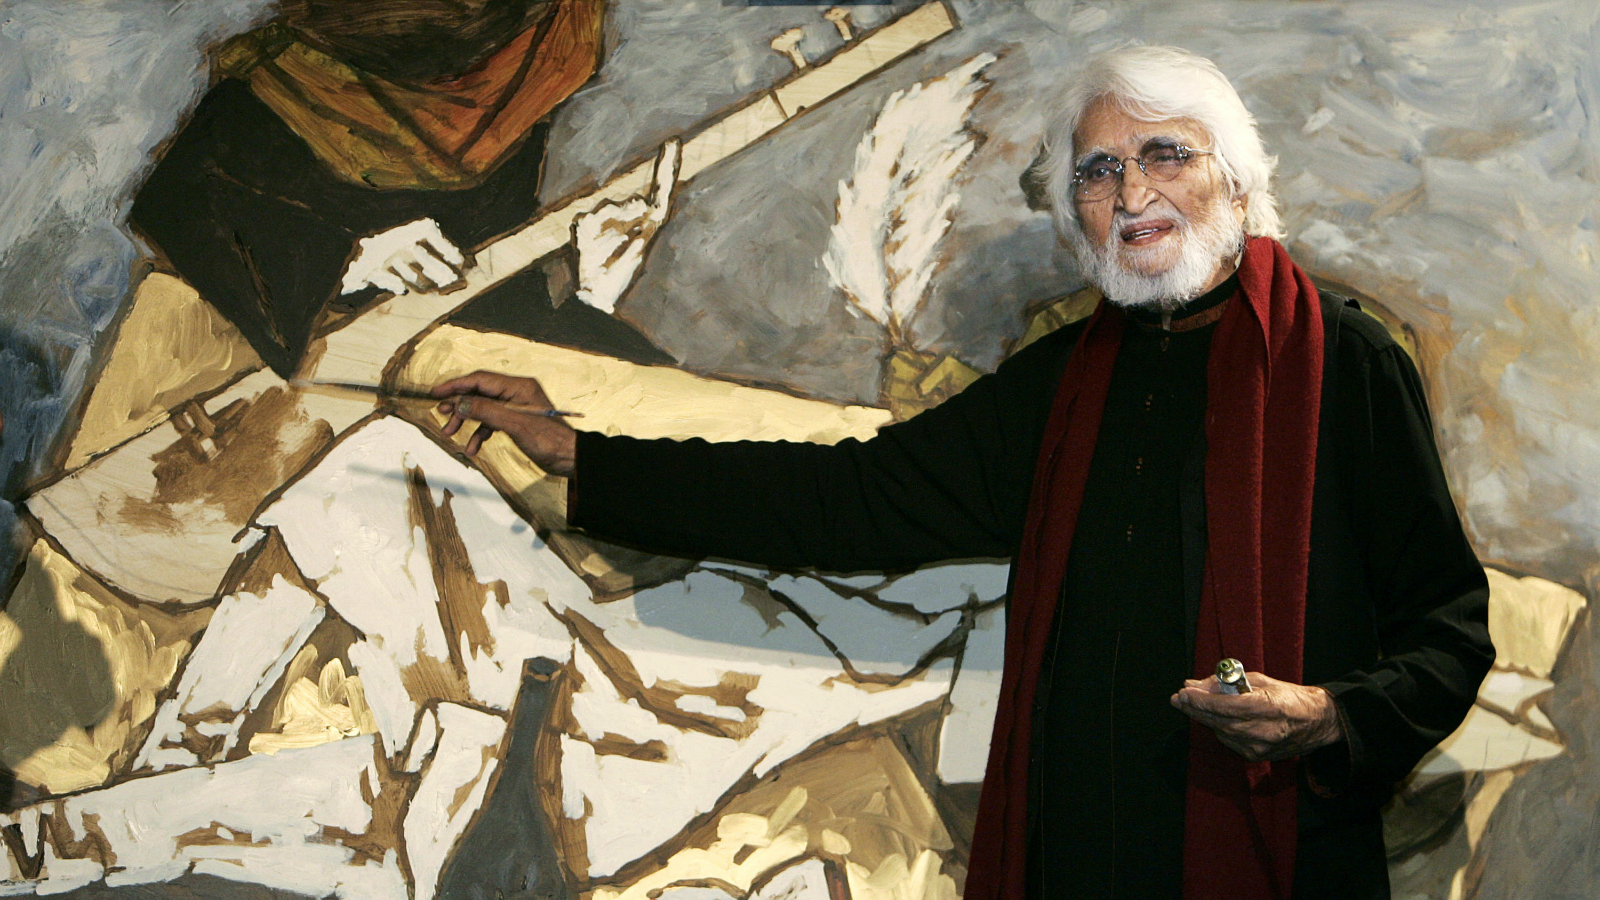 FILE - In this June 7, 2007 file photo, M.F. Husain, India's most famous artist, finishes off a canvas he painted together with Bollywood actor Shah Rukh Khan, unseen, during a fund-raising auction in central London's auction house. News reports say Hussain has died in London Thursday, June 9, 2011. Hussain had lived in self-imposed exile in Dubai since 2005 after coming under attack from Hindu hard-liners in India for a nude painting of a woman shaped like India's map. No details of the cause of his death were immediately known. (AP Photo/Lefteris Pitarakis, File)